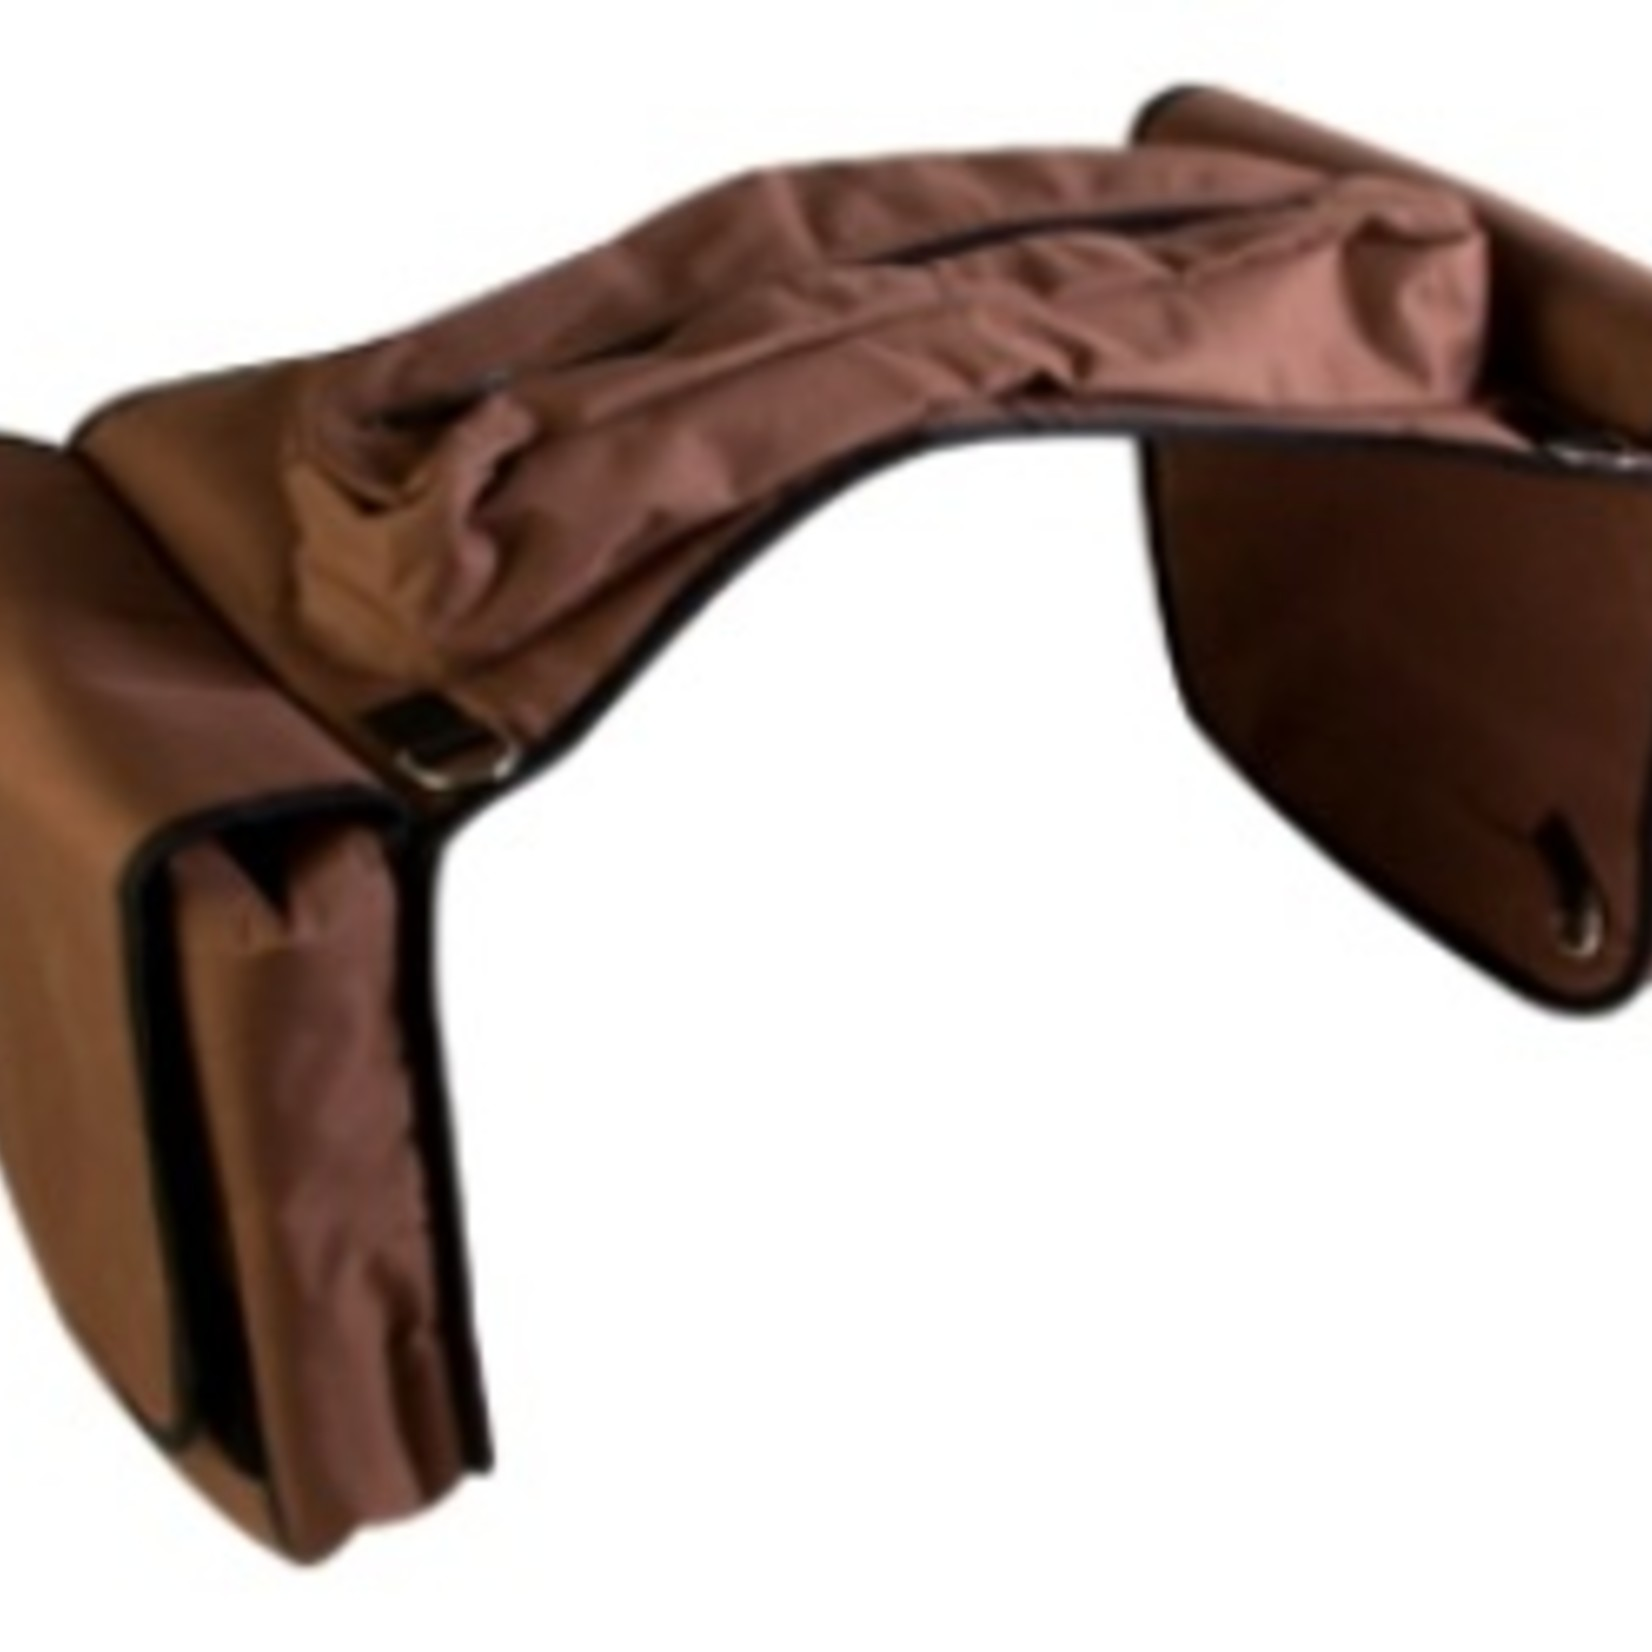 Saddle Bag - Insulated w/cantle bag 11x13x3.5